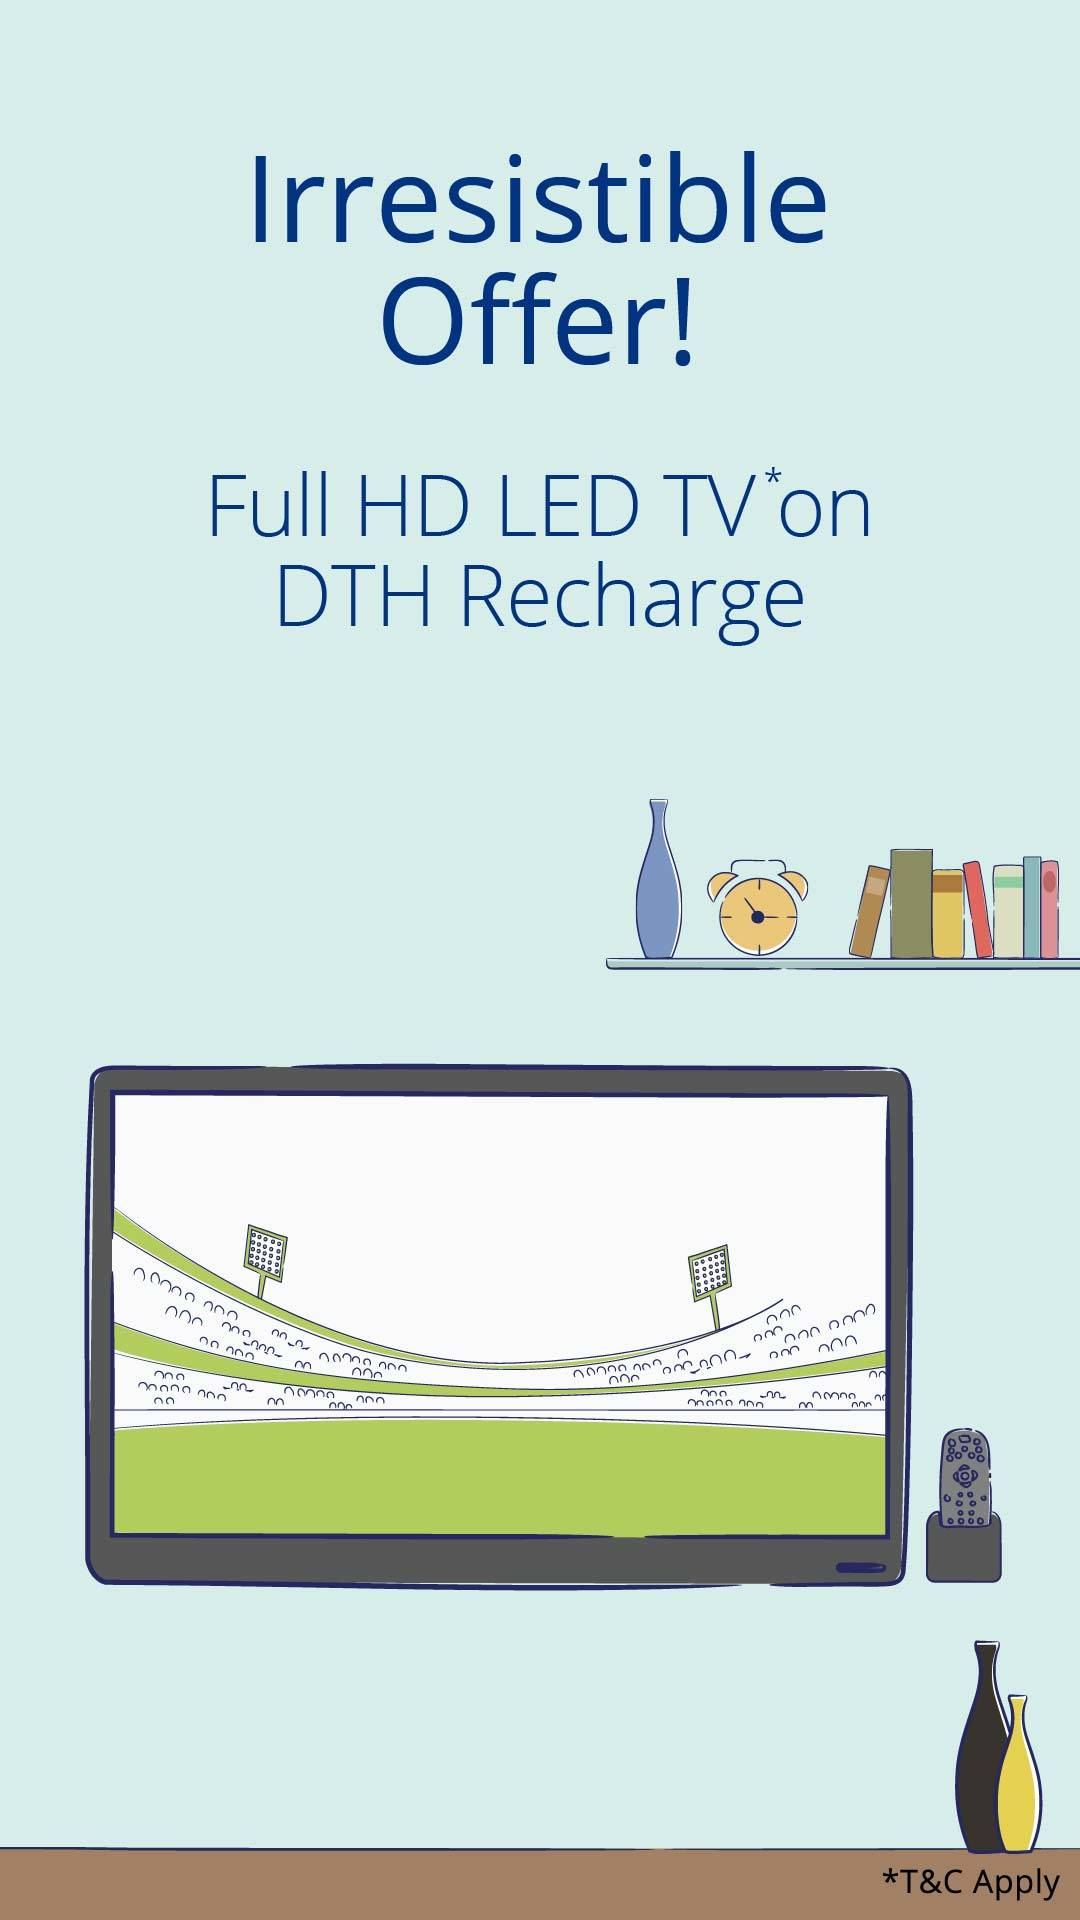 Paytm Win Led Tv on DTH Recharge of free Tricknshop